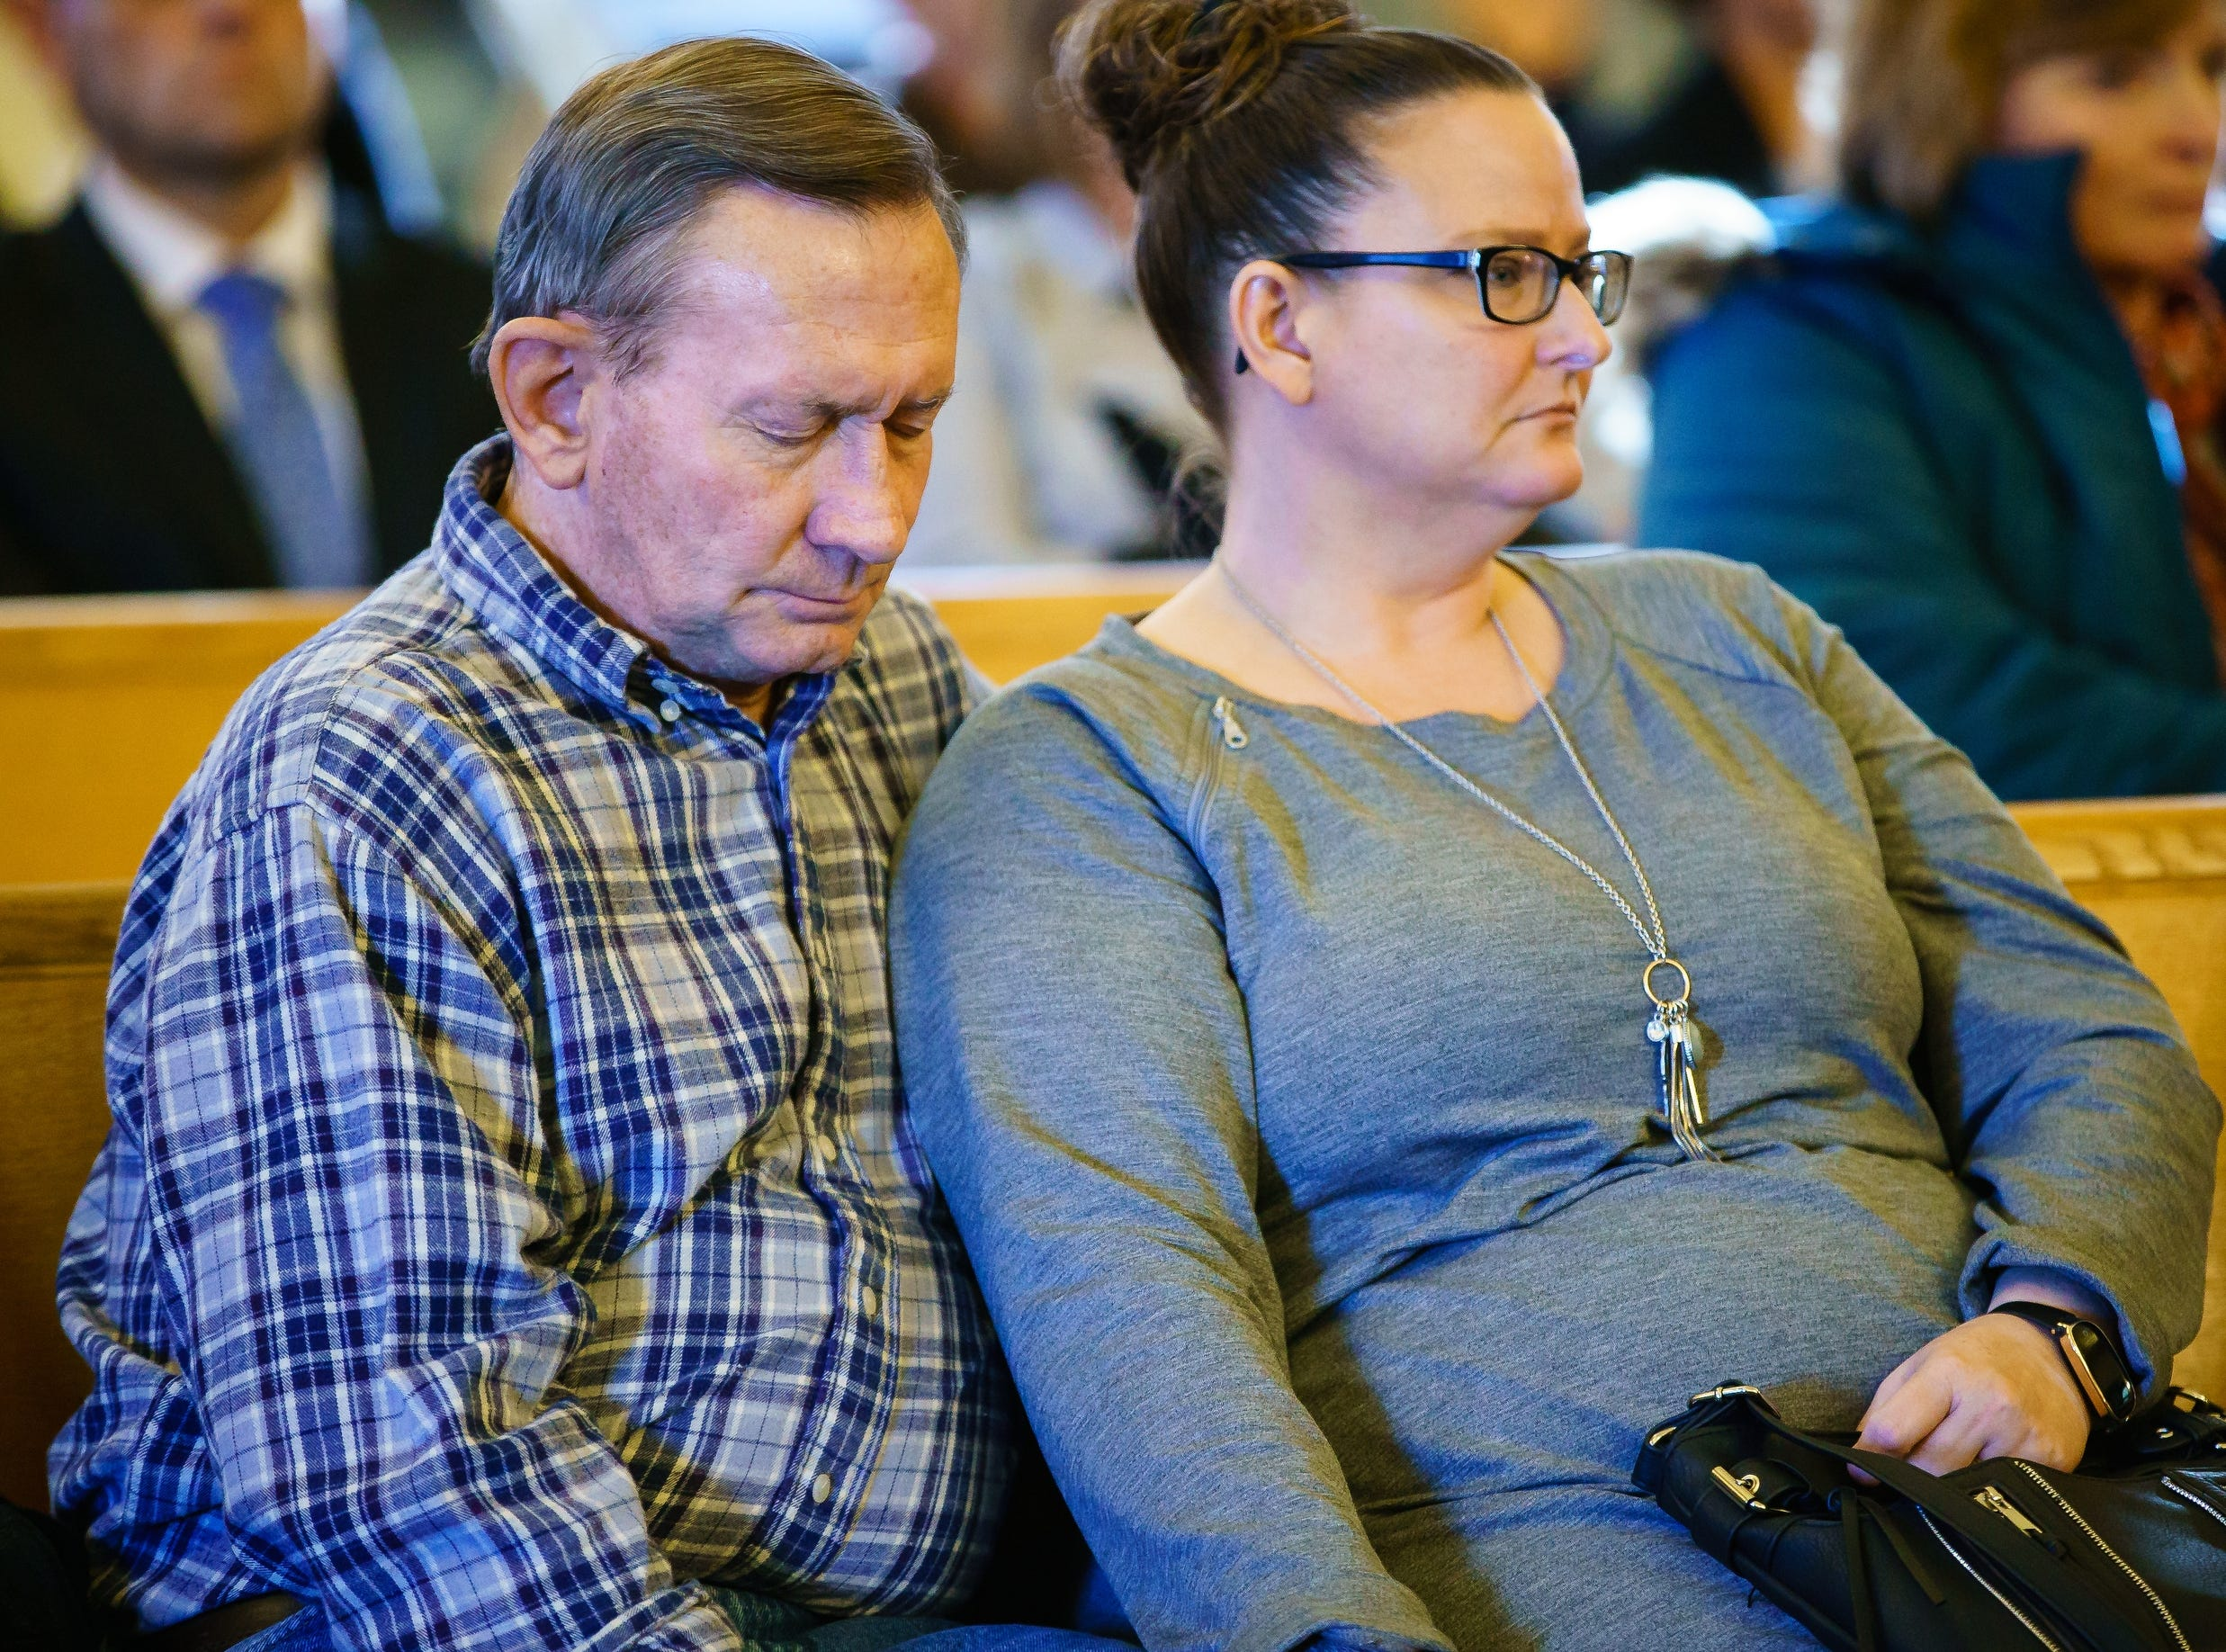 Sabrina Ray's biological Aunt, Nicole and Uncle, Pat, listen as Misty Ray pleas guilty to three counts of kidnapping during a hearing at the Dallas County Courthouse on Wednesday, Jan. 9, 2019, in Adel.